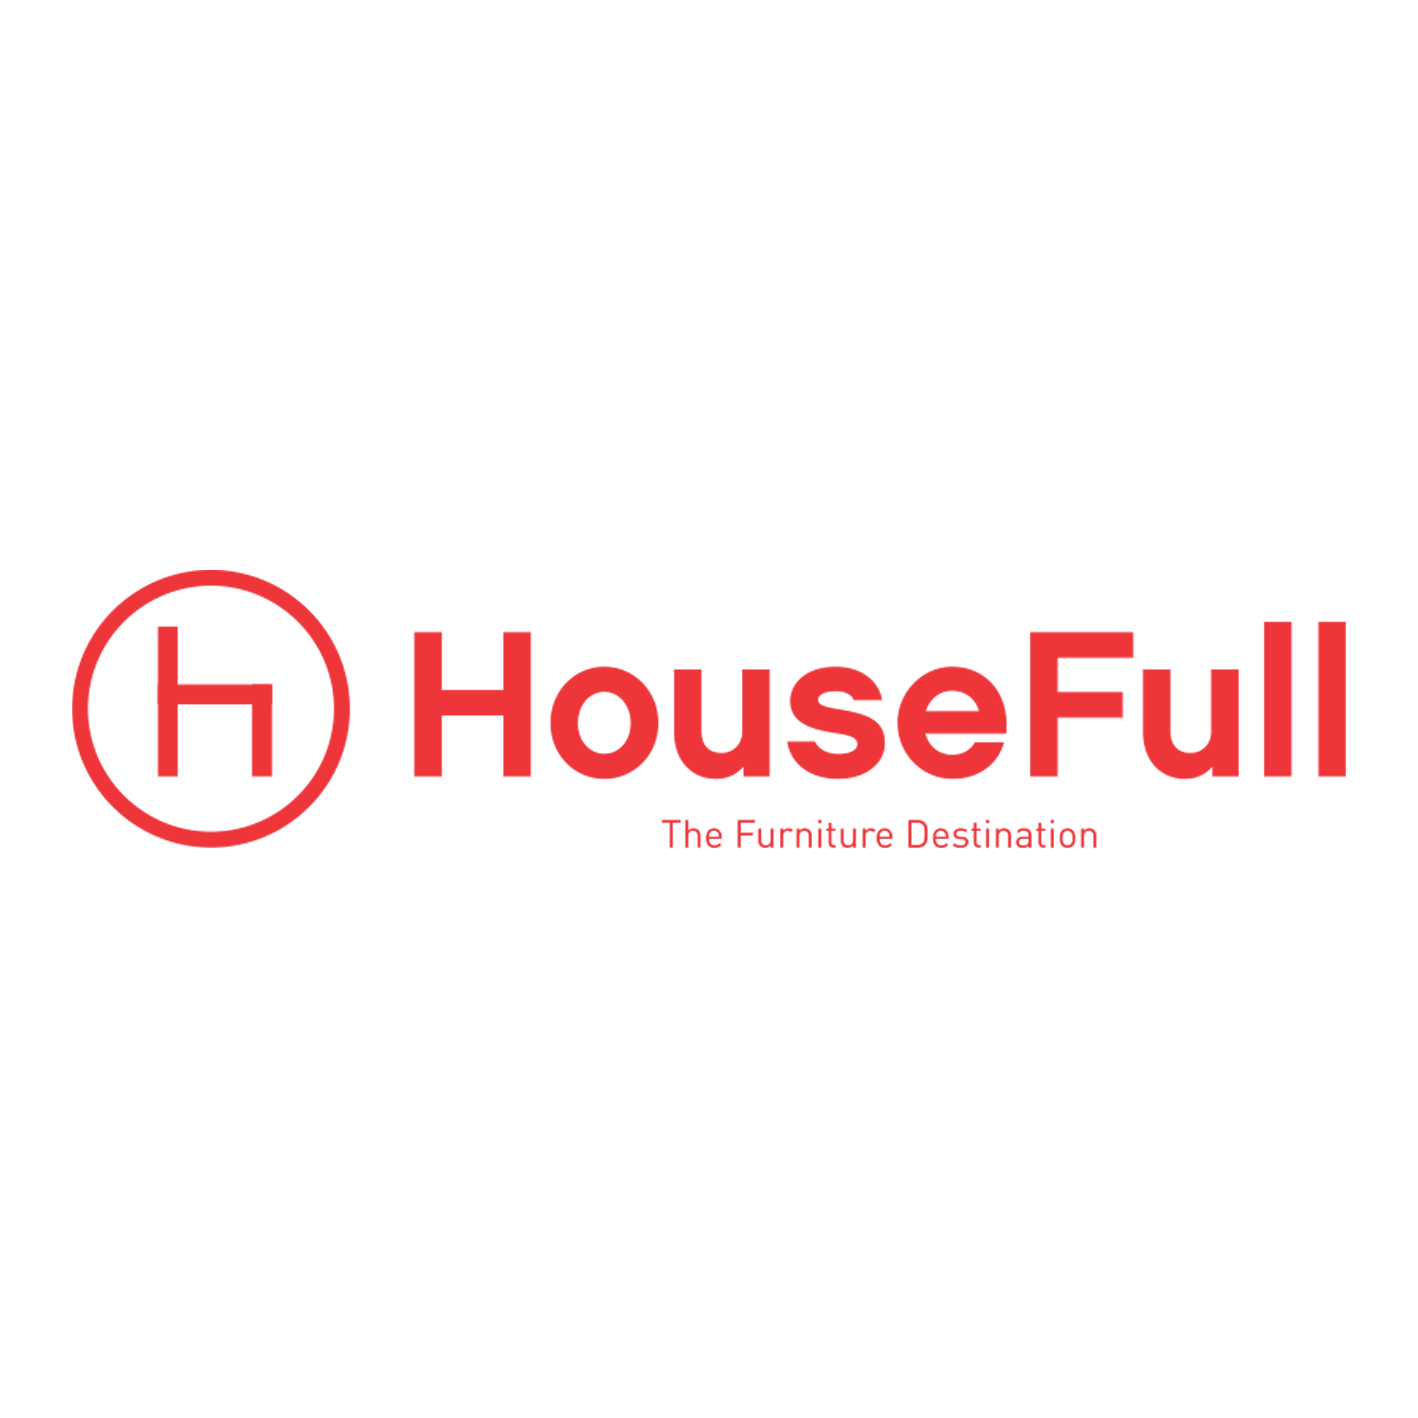 Housefull.co.in